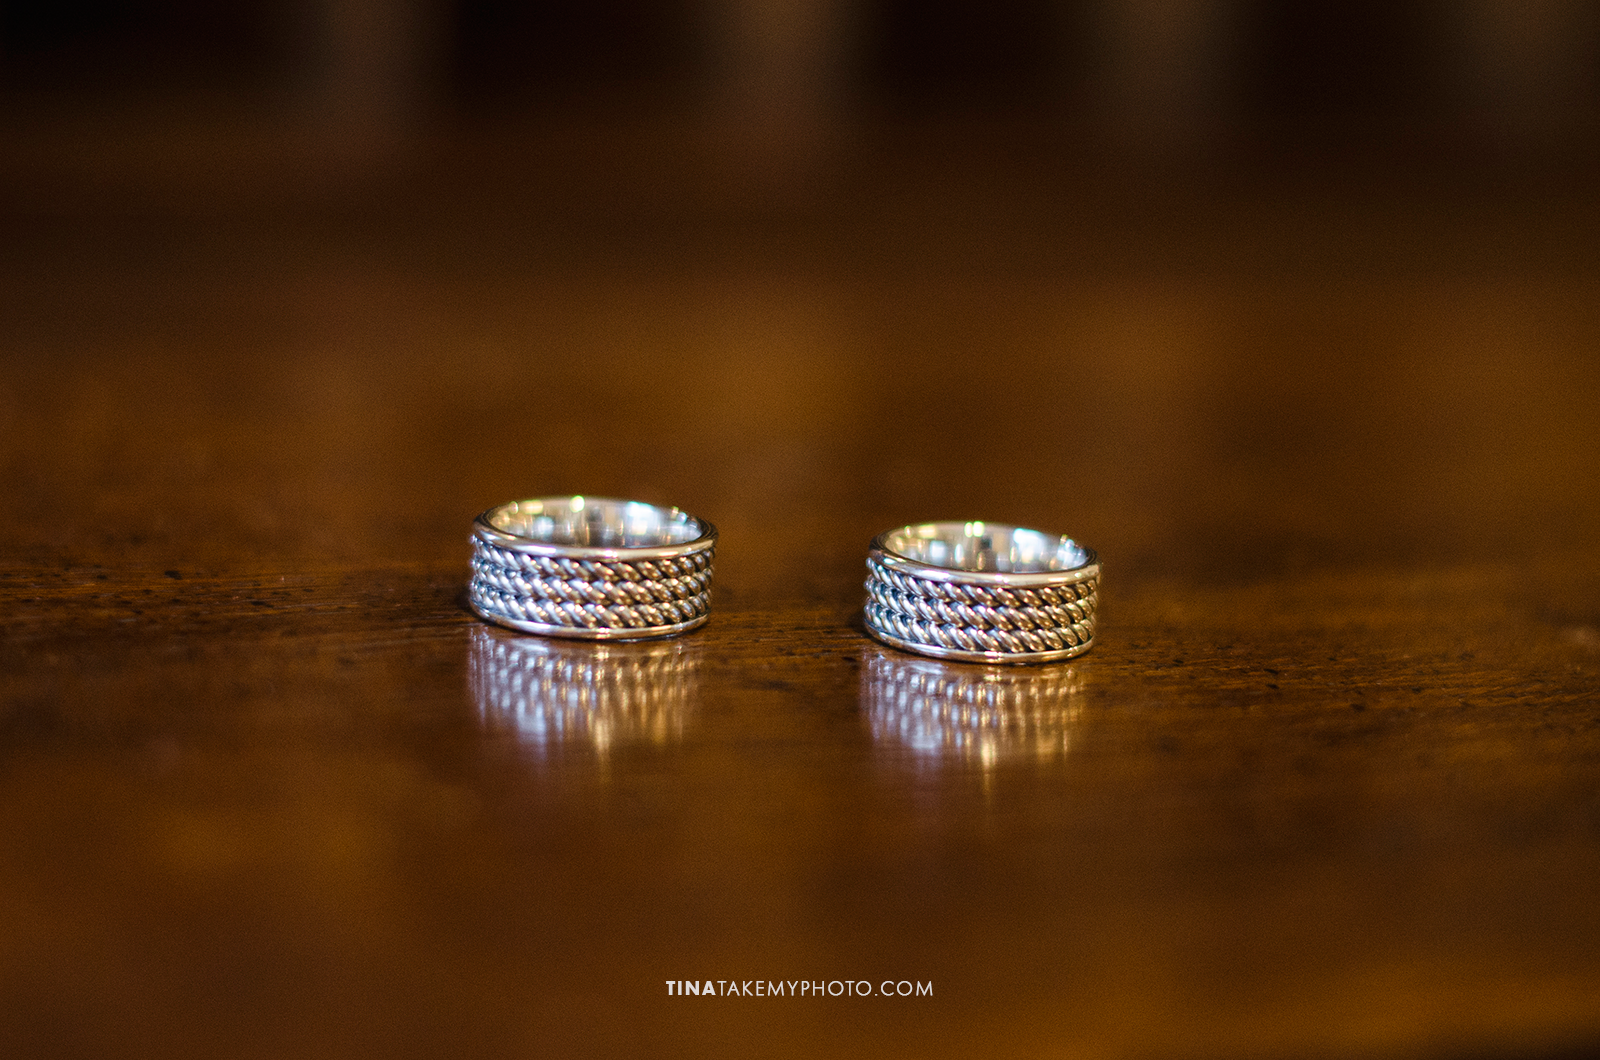 40-Washington-DC-Virginia-Gay-Same-Sex-Wedding-Men-12-13-14-Rings-Silver-Photographer